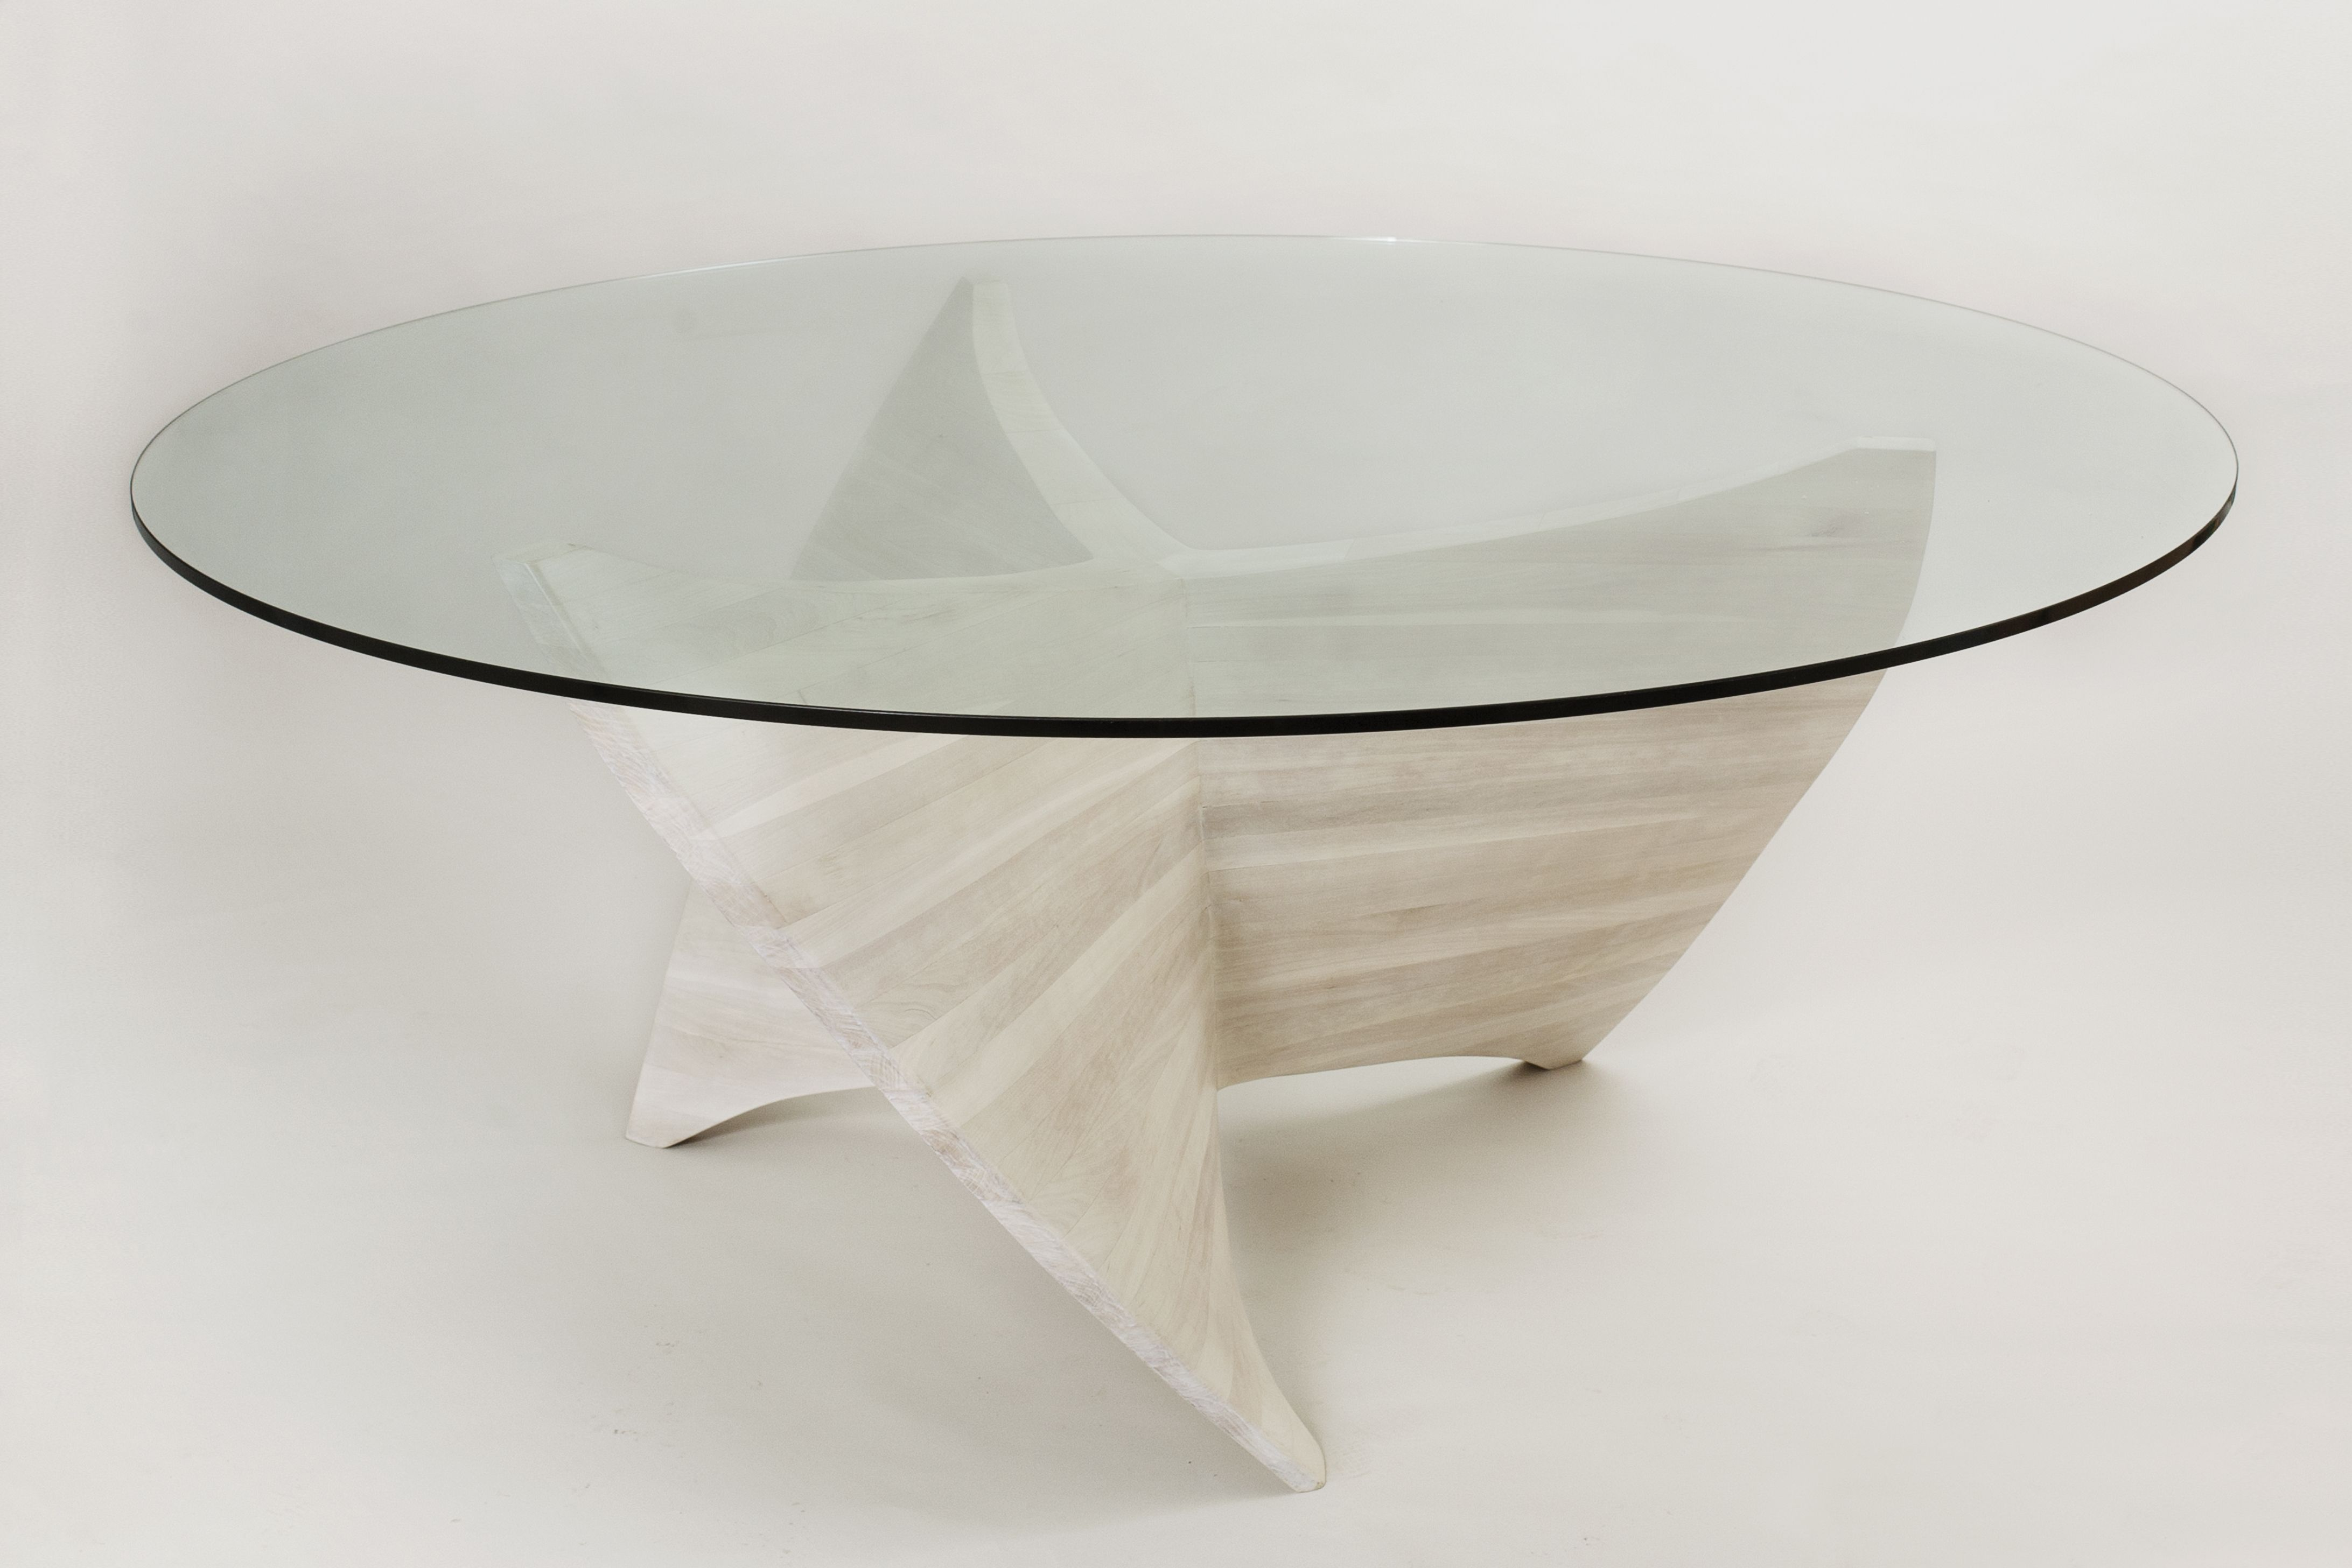 N3 Coffee Table Contemporary Luxury Furniture Lighting And Interiors In New York Contemporary Coffee Table Coffee Table Luxury Furniture [ 2912 x 4368 Pixel ]